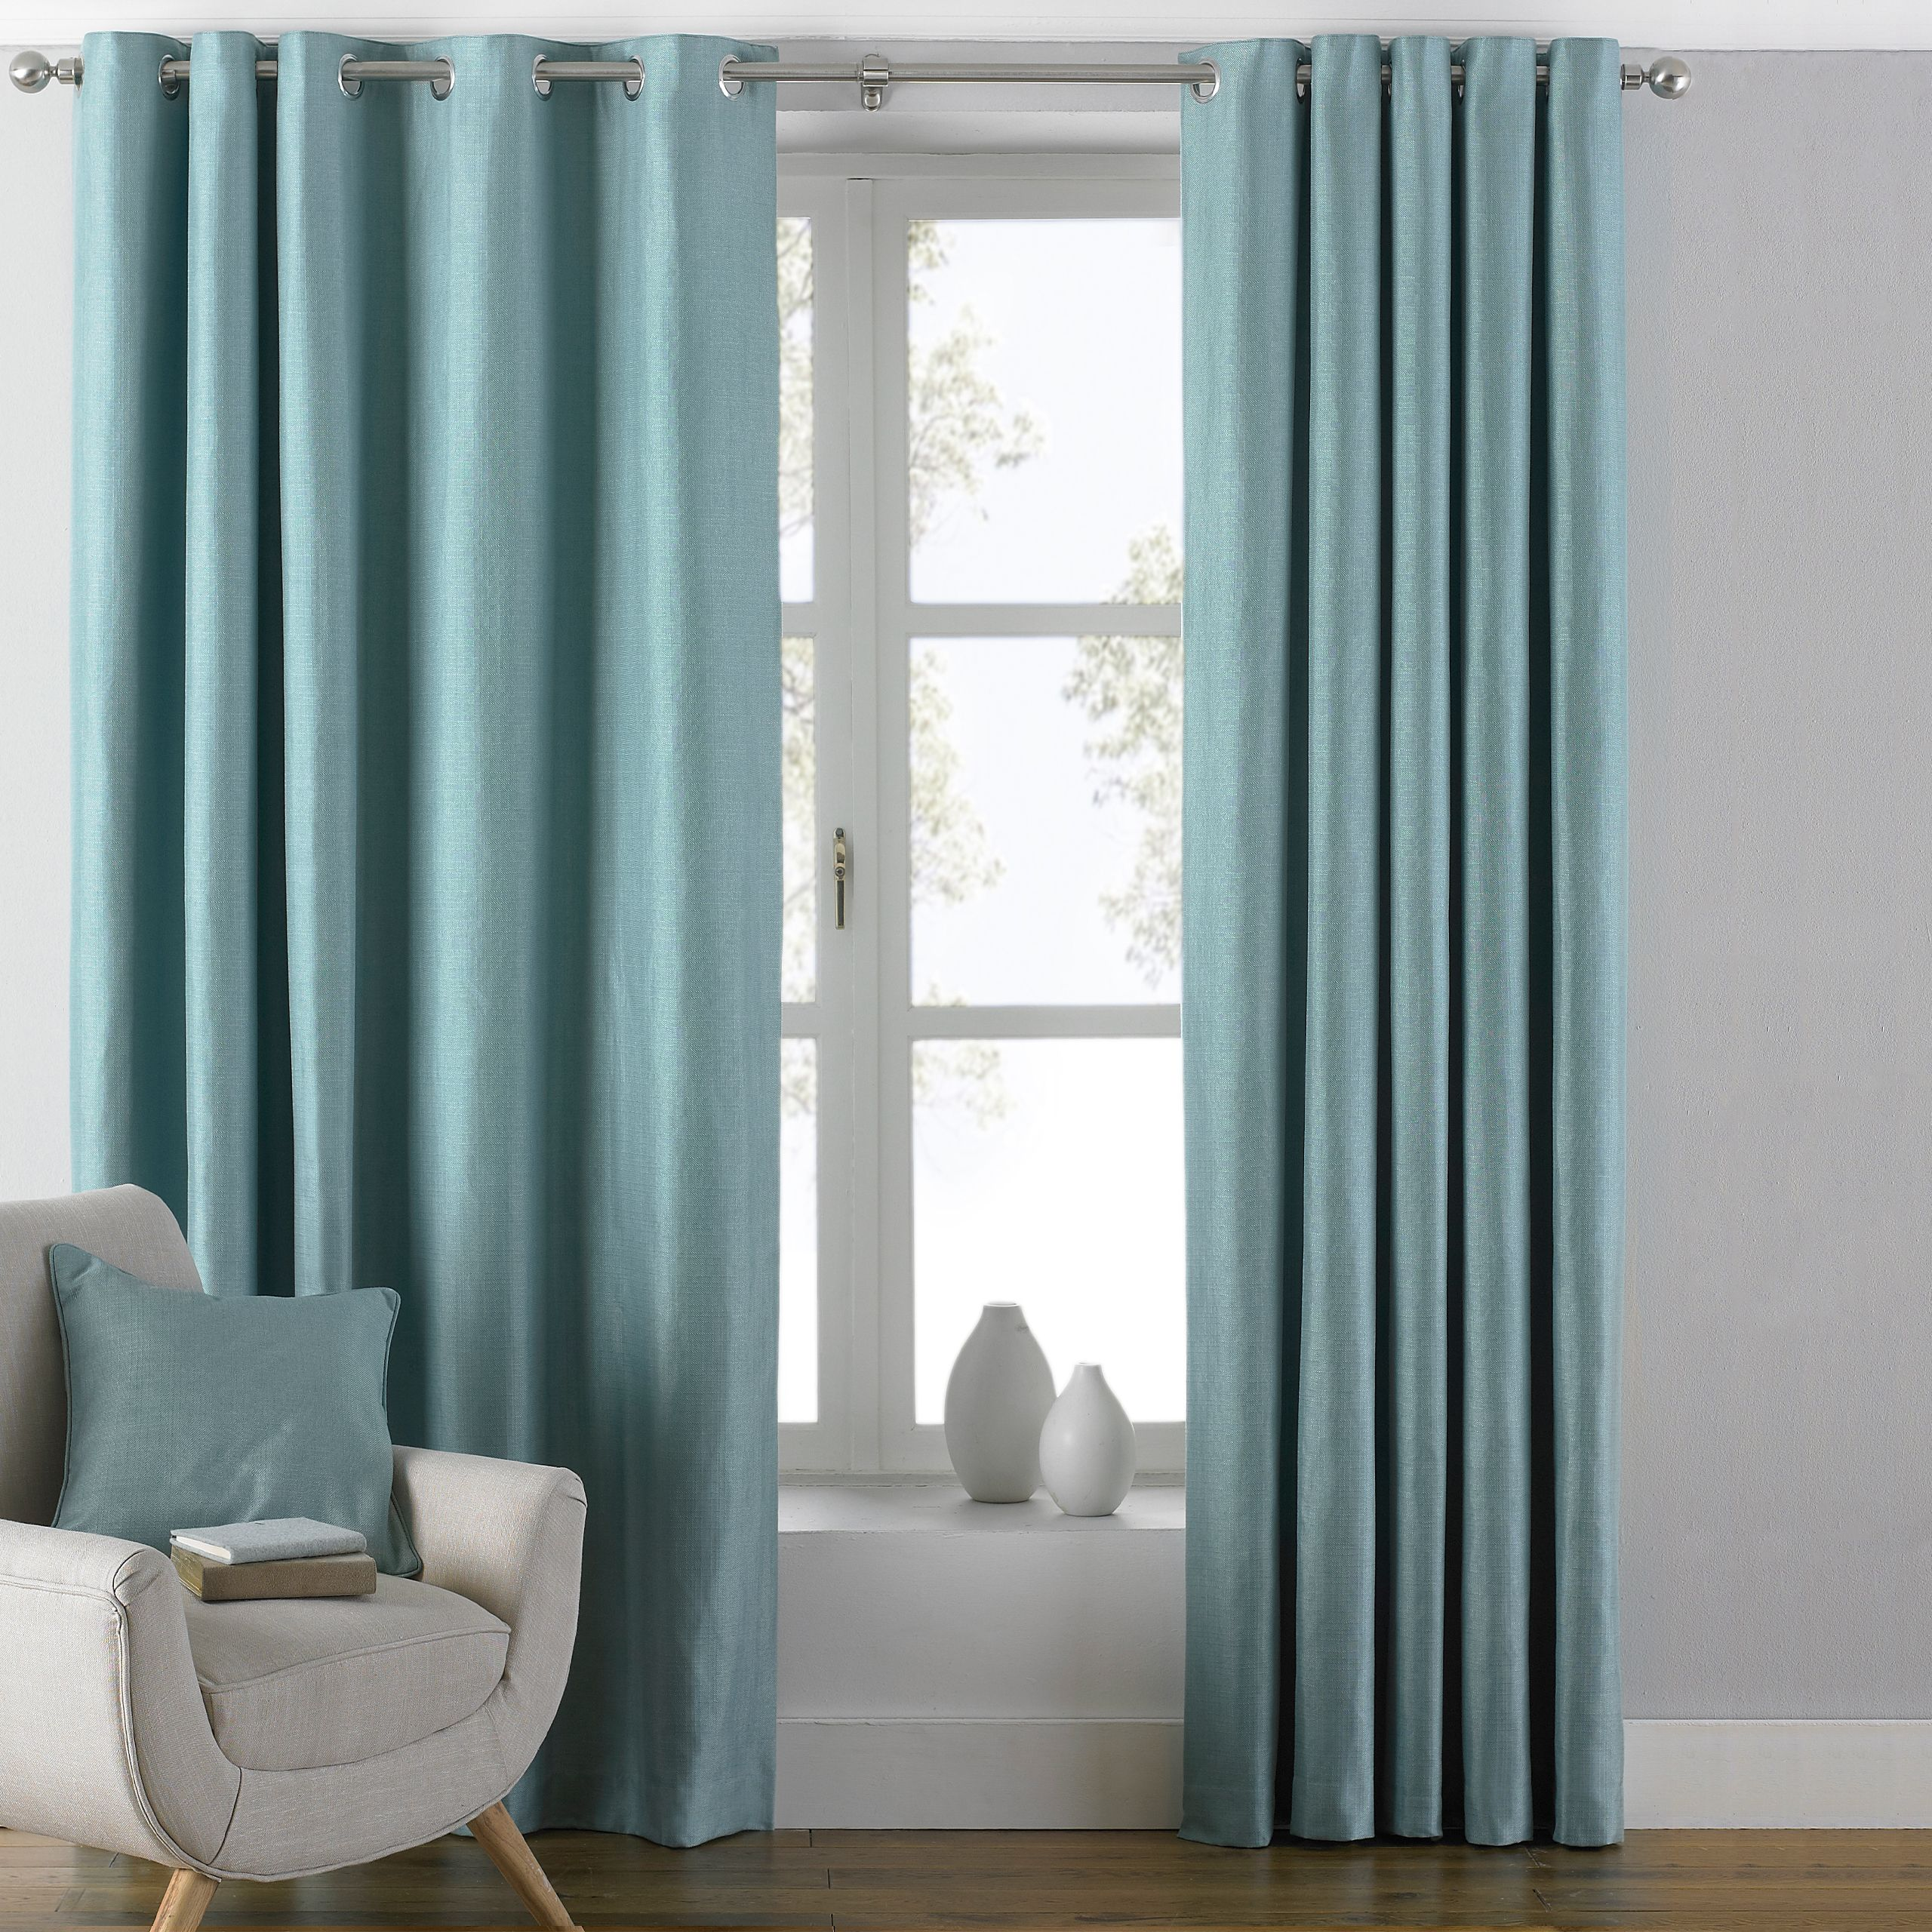 Atlantic Twill Woven Eyelet Curtains in Duck Egg Blue